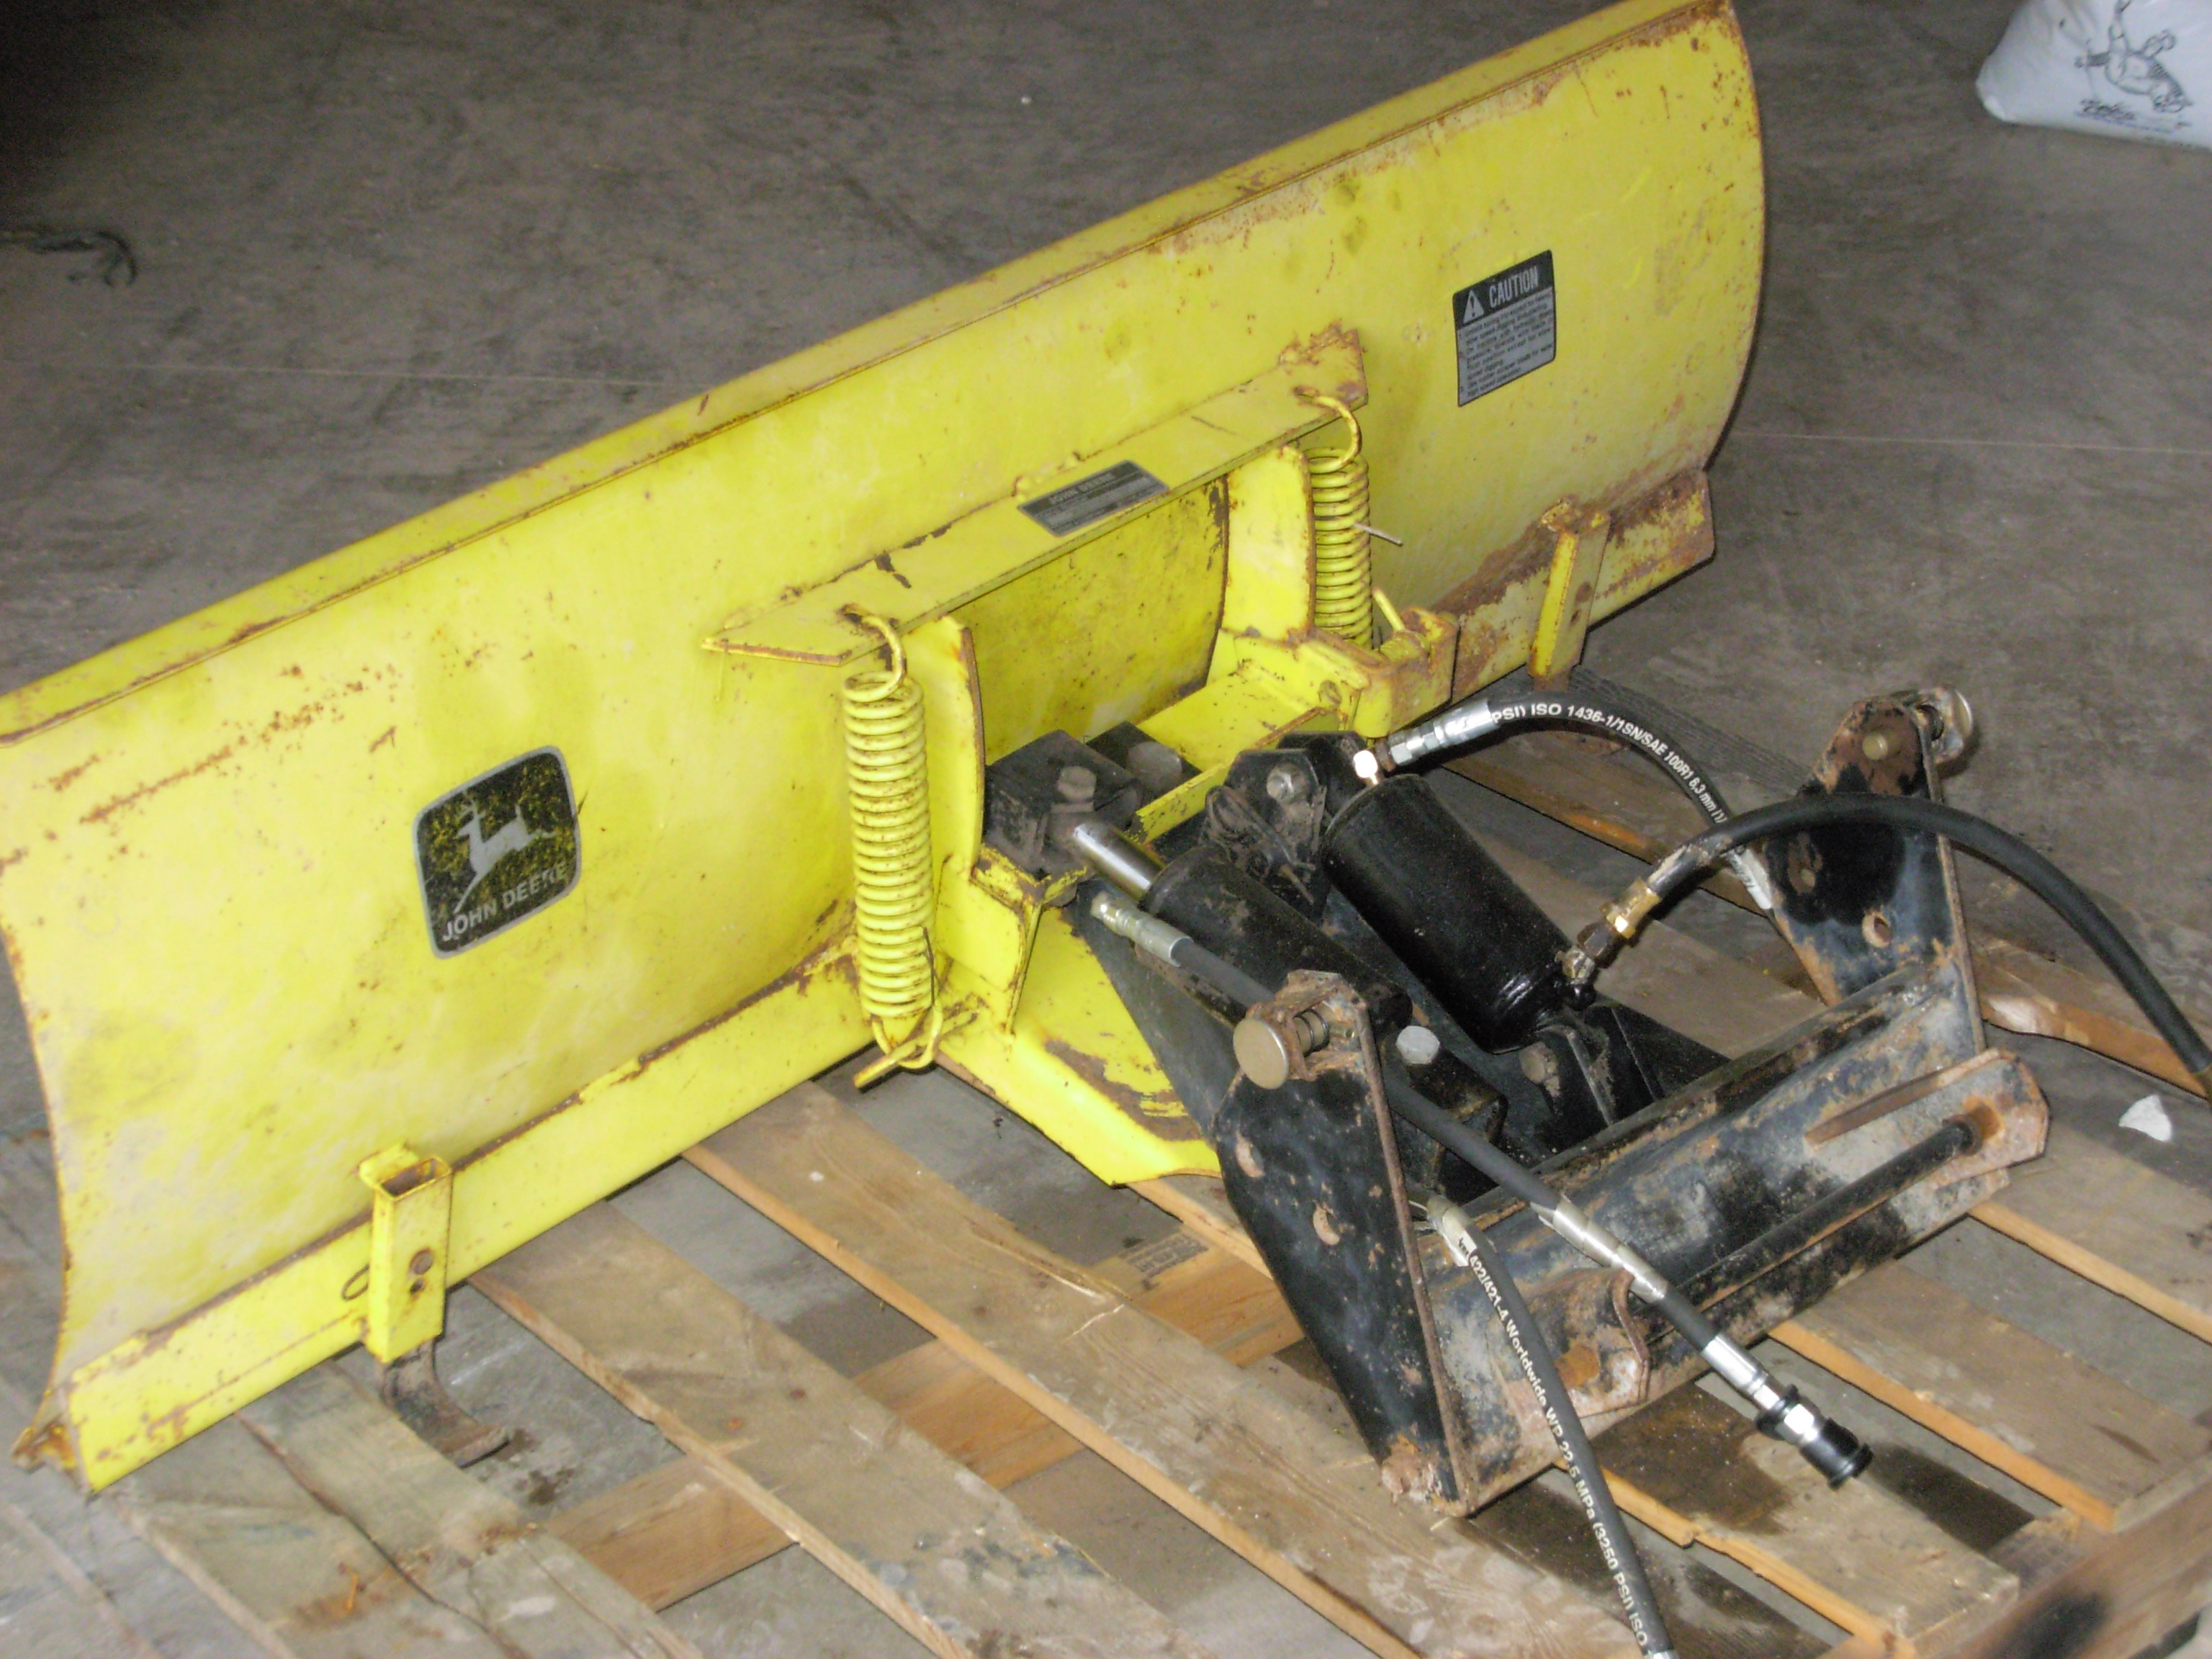 Lawn And Garden Tractor Attachments J D Mendon Il. John Deere 420 430 4way Snow Blade 42 Sn M00042 1525783 3 New Hoses Nice Edge And Feet. John Deere. 1993 John Deere 430 Wiring Diagram At Scoala.co